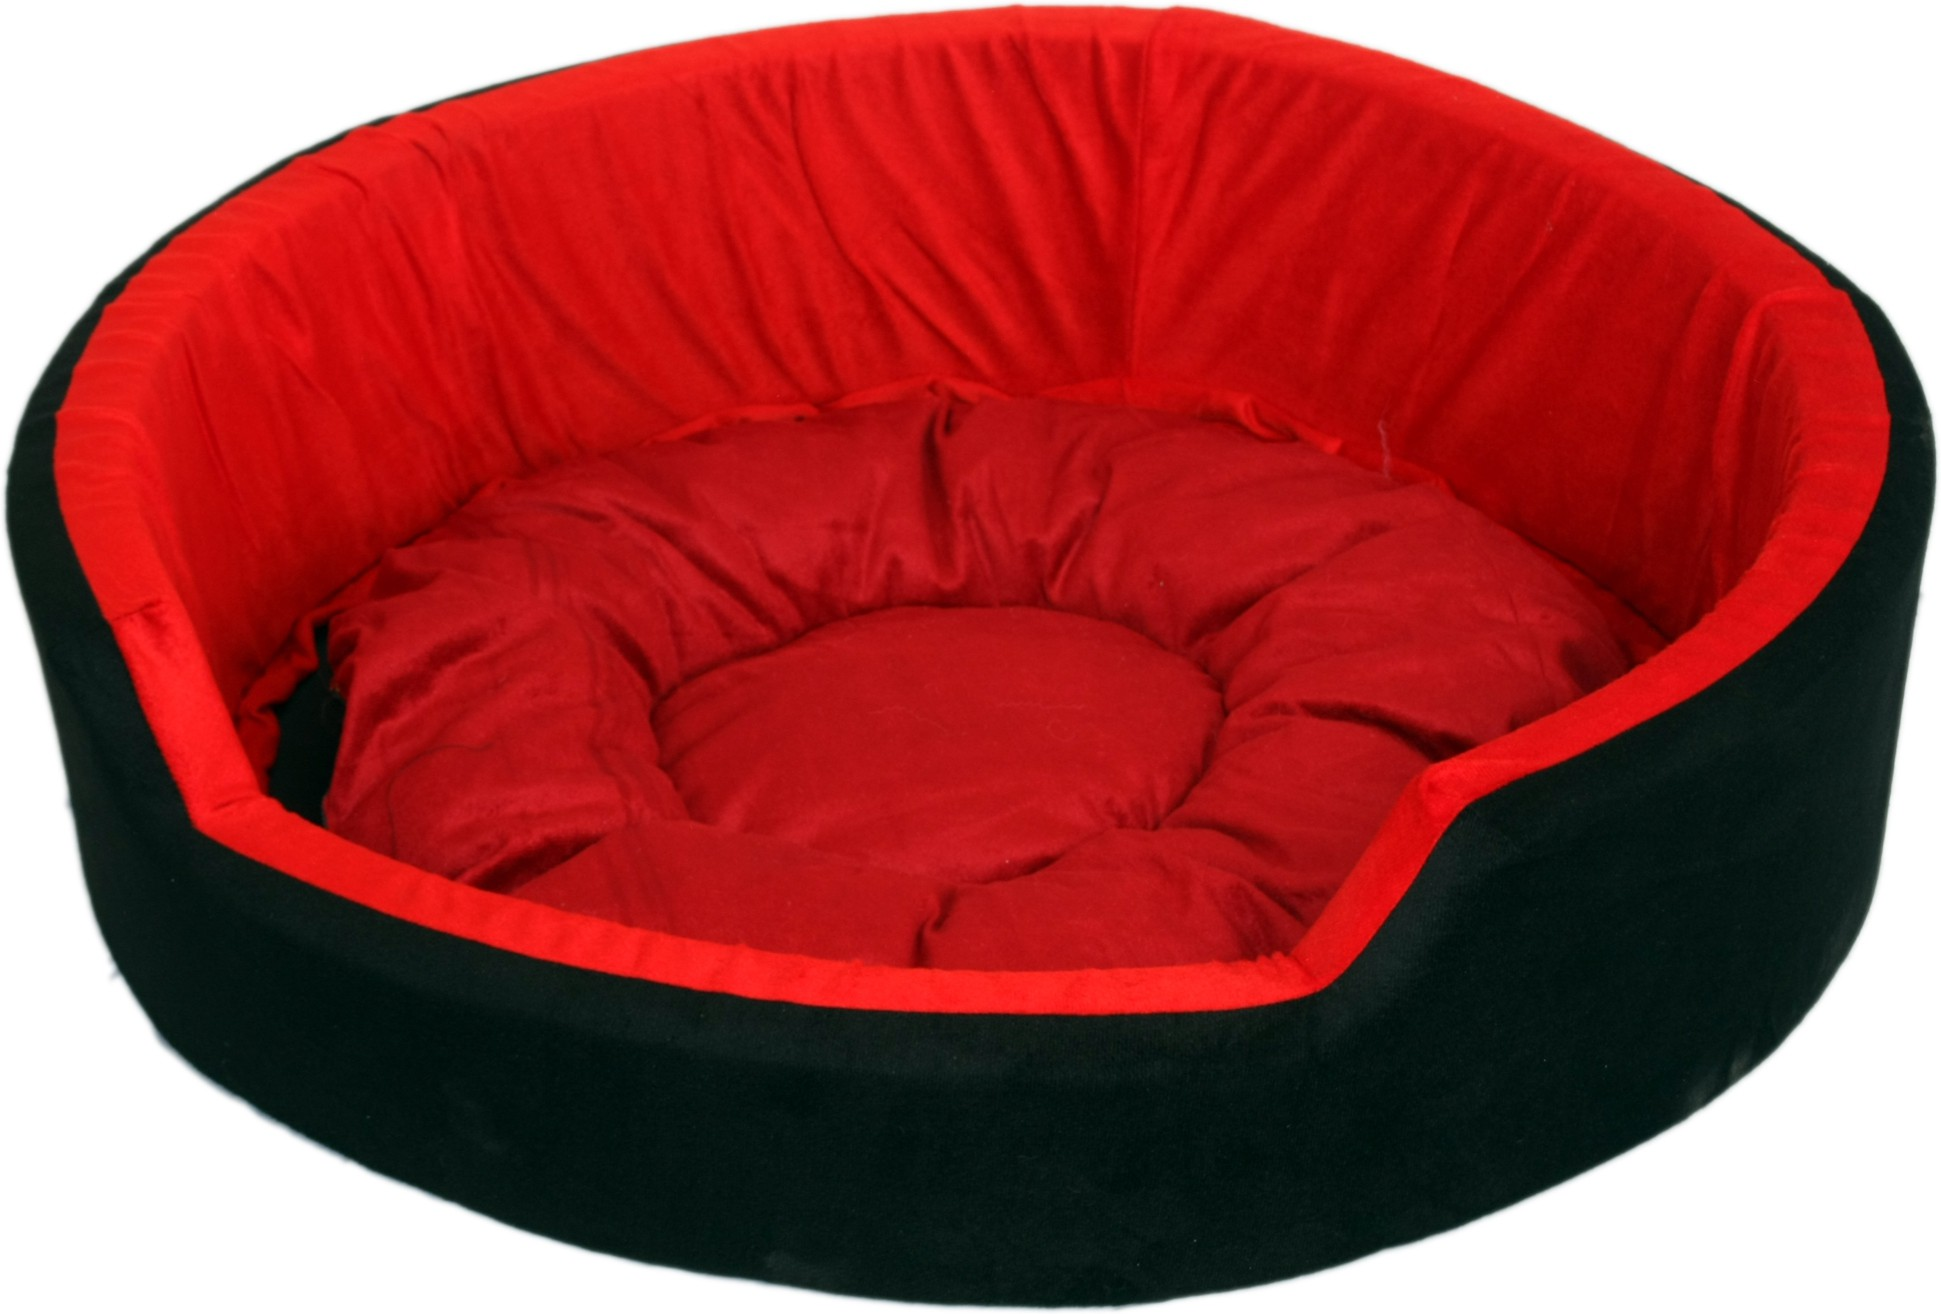 View Pet Club51 PC28 S Pet Bed(Multicolor) Furniture (Pet Club51)